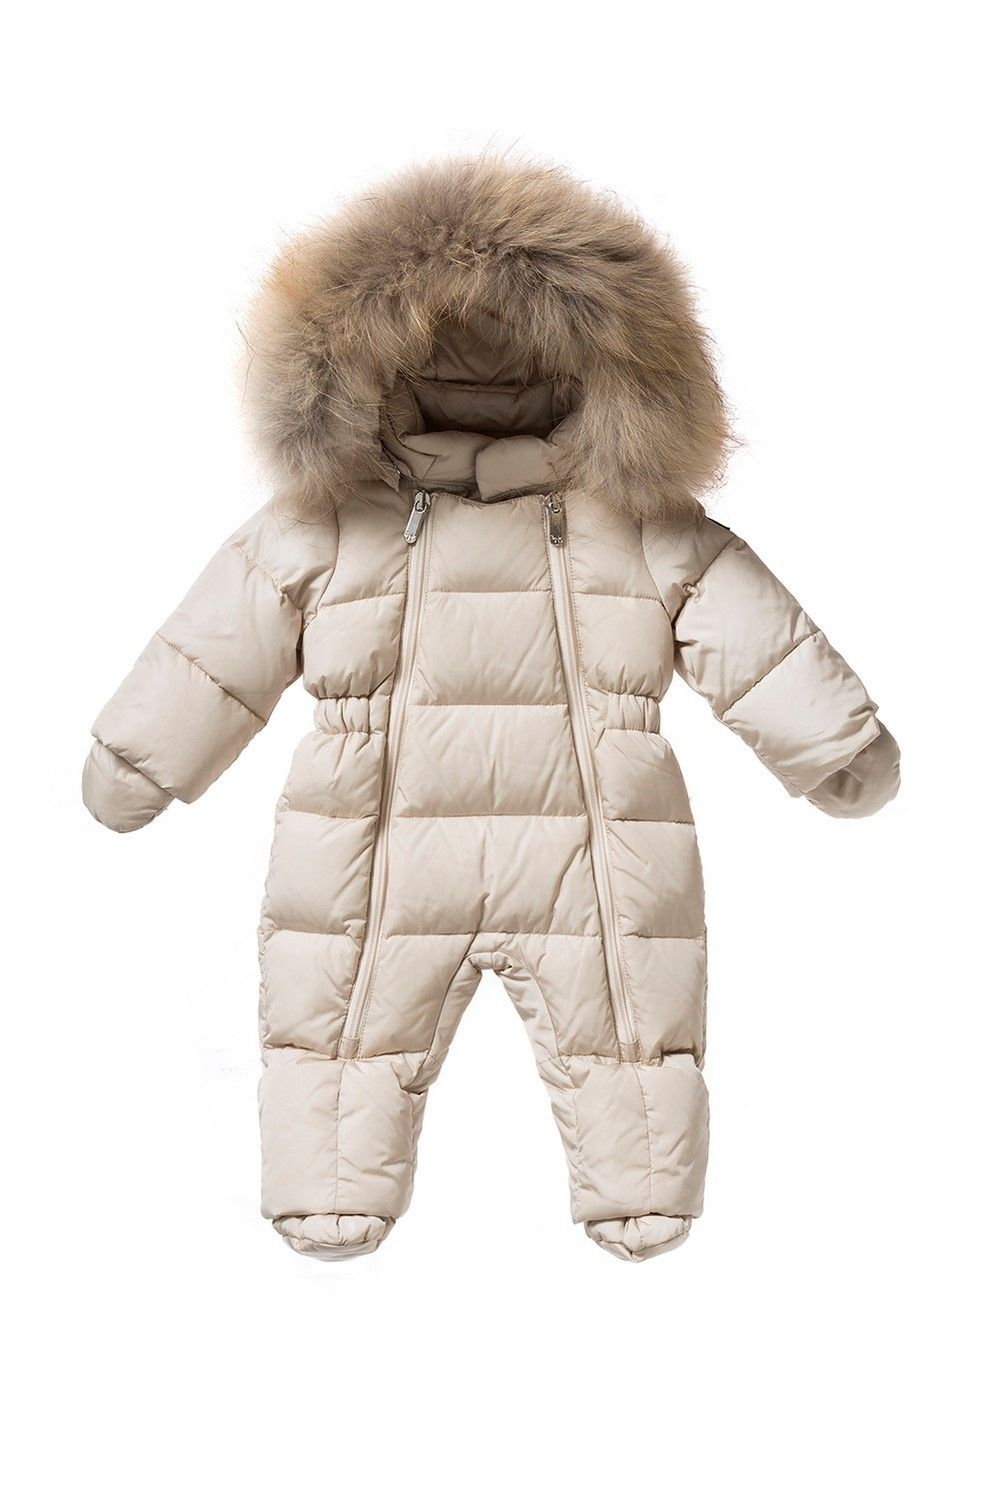 49e66ce86 Italian Luxury DOWN-FILLED SNOWSUIT WITH FUR IN BEIGE AND SAND